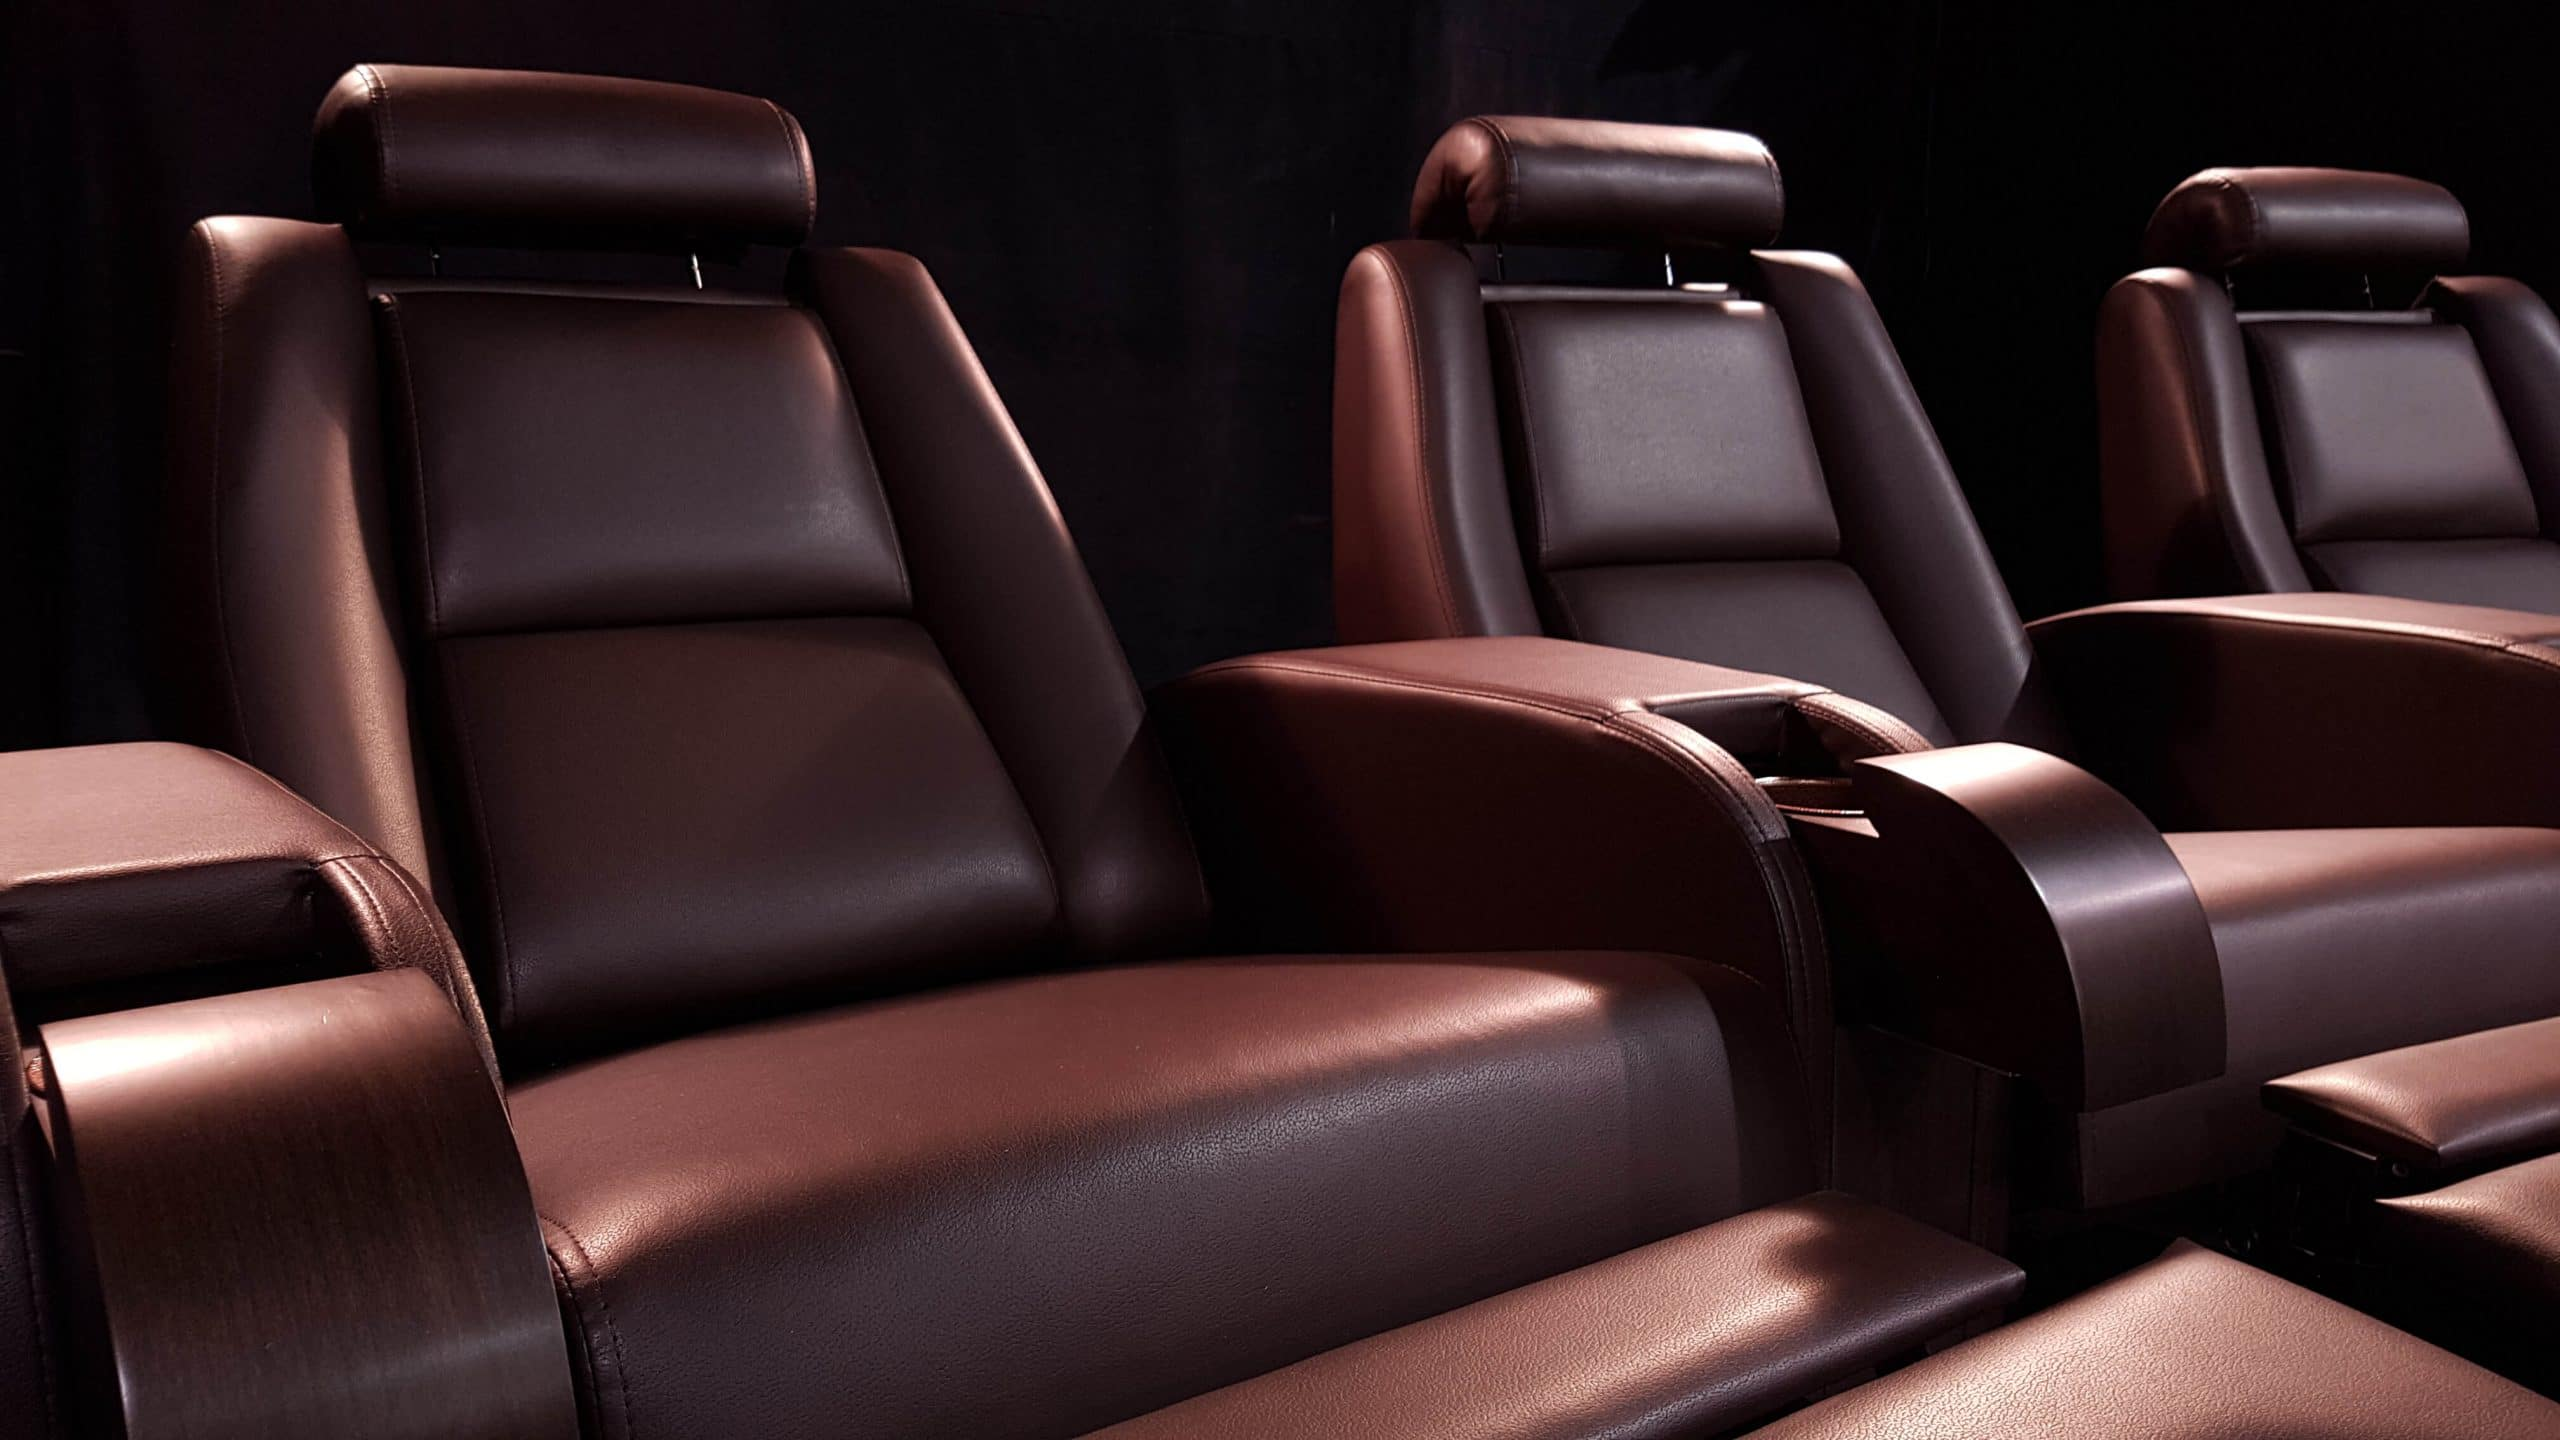 theater_recliner seats brown (1)